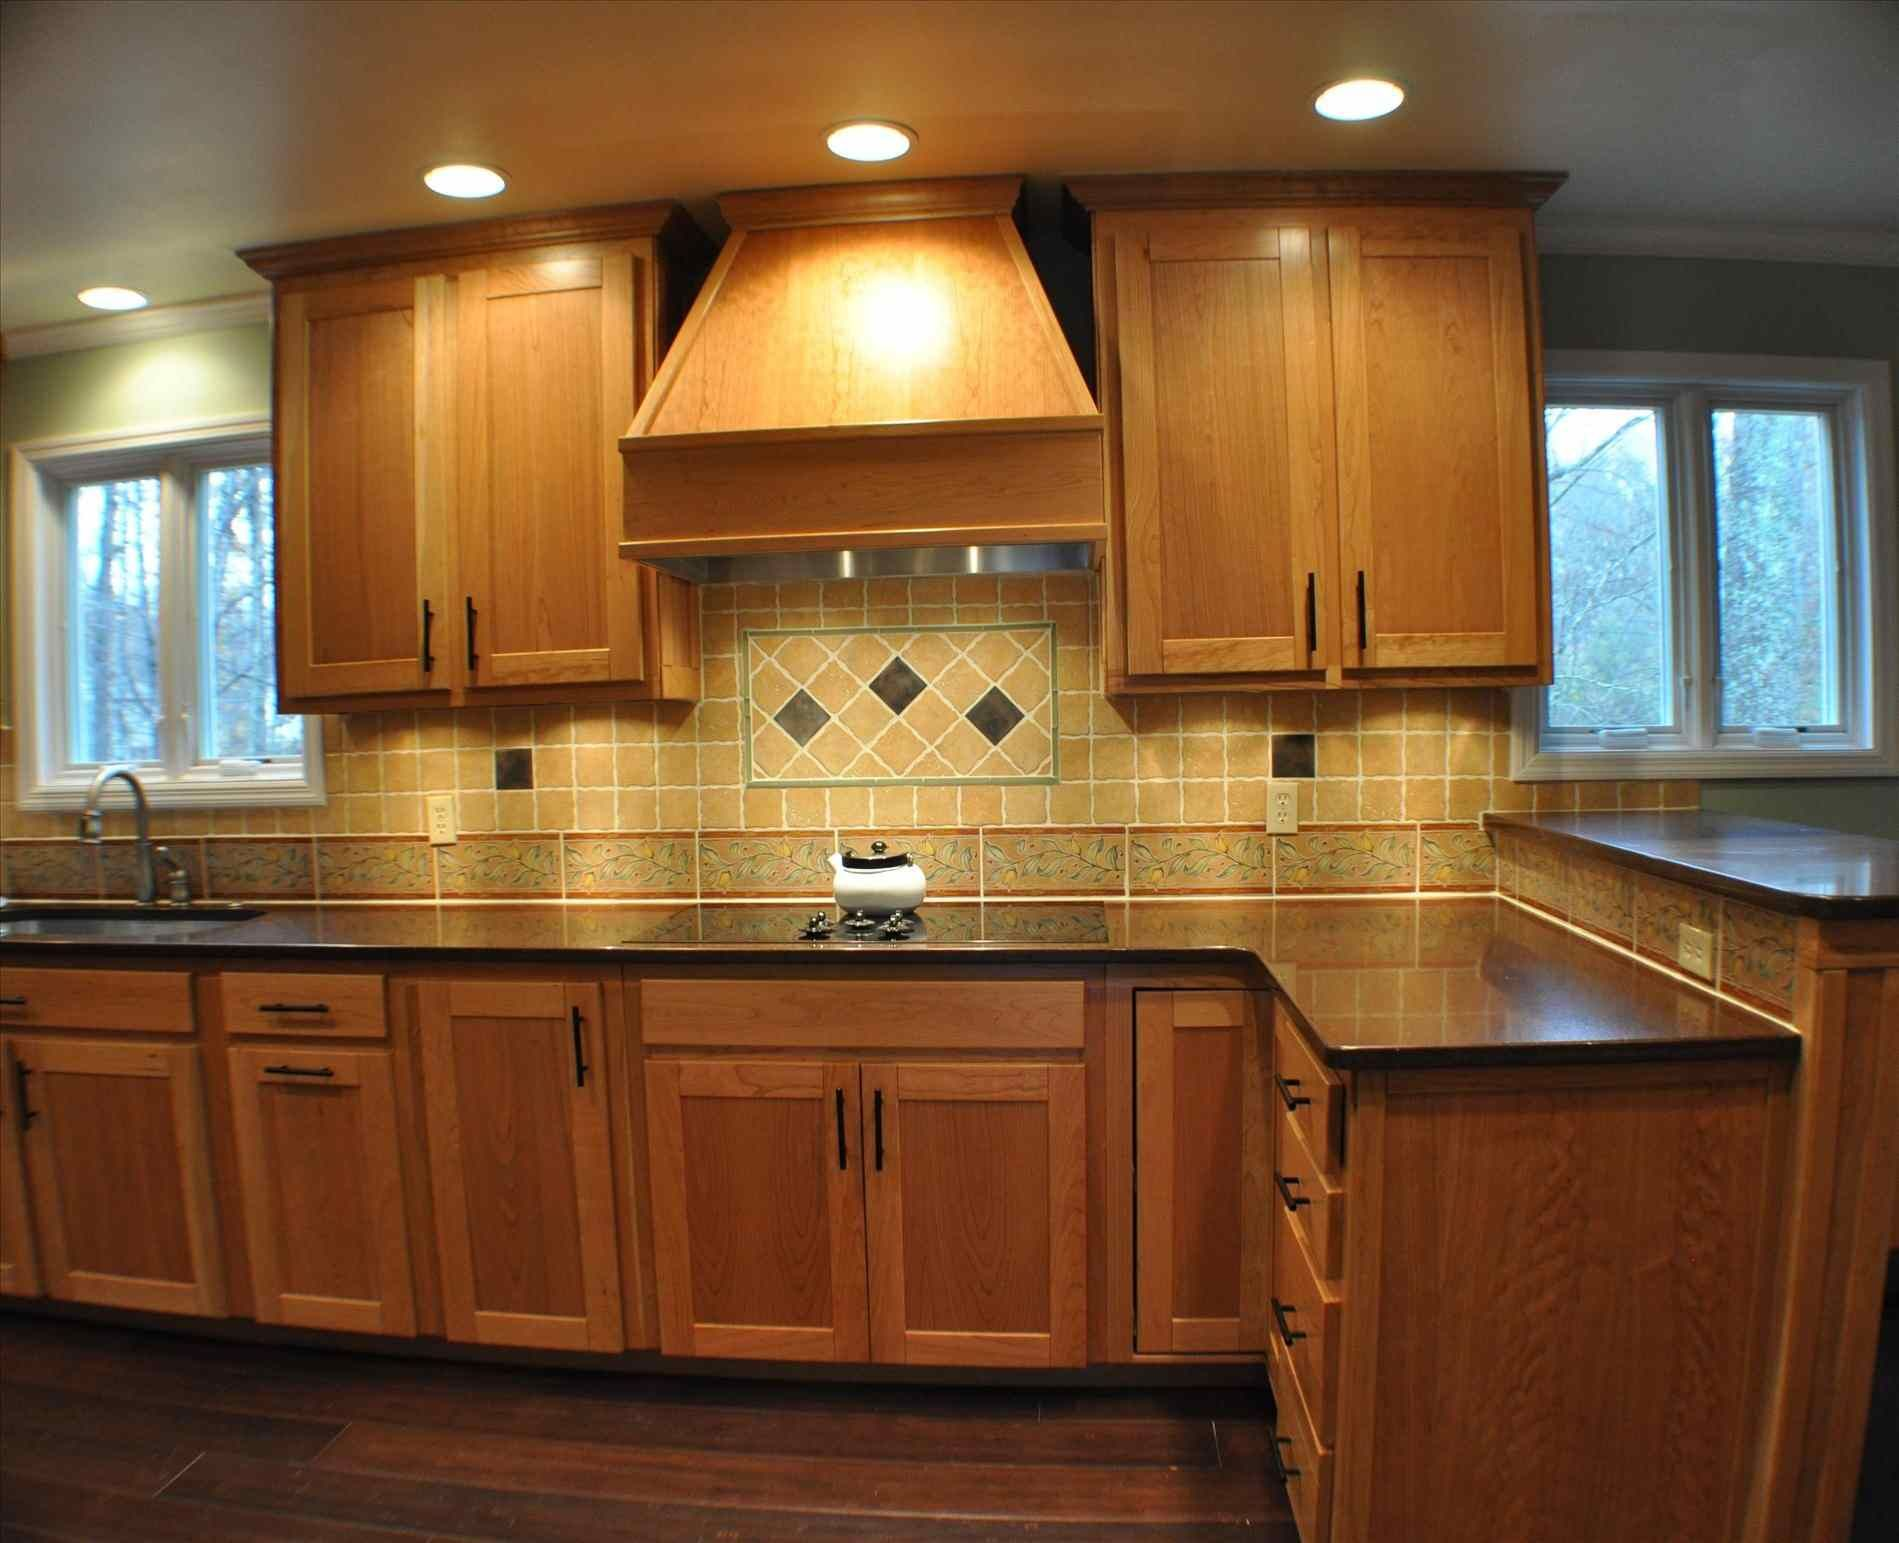 Image result for maple kitchen cabinets with dark wood ... on Maple Kitchen Cabinets With Dark Wood Floors Dark Countertops  id=14587